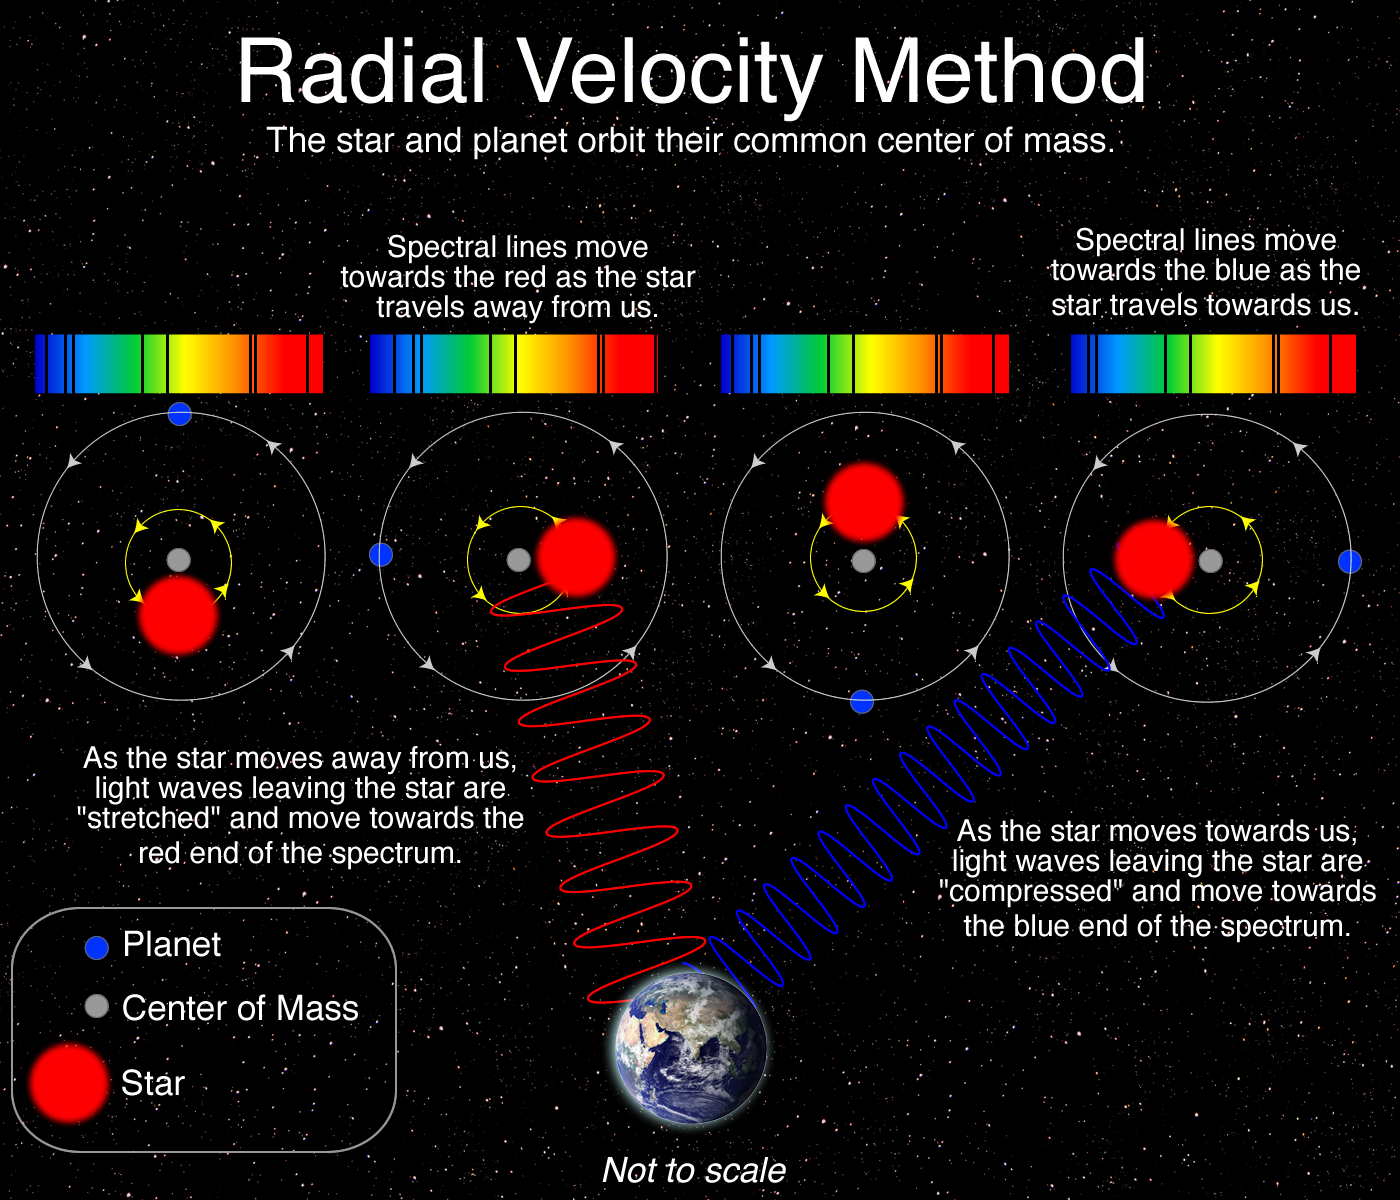 What is the Radial Velocity Method?